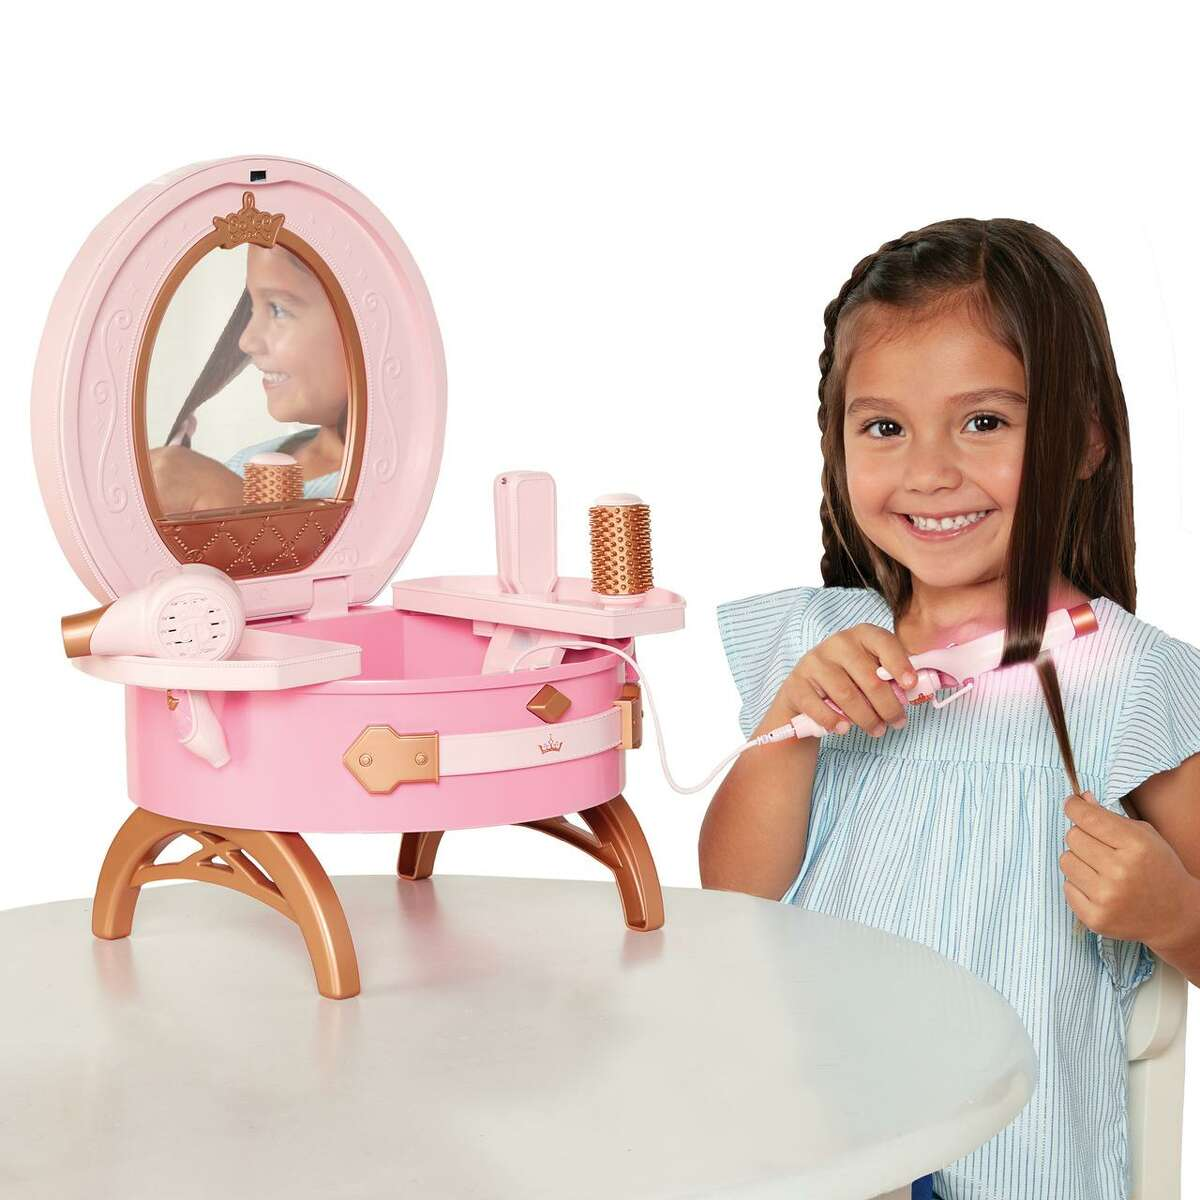 Disney Princess Vanity ($49.88)